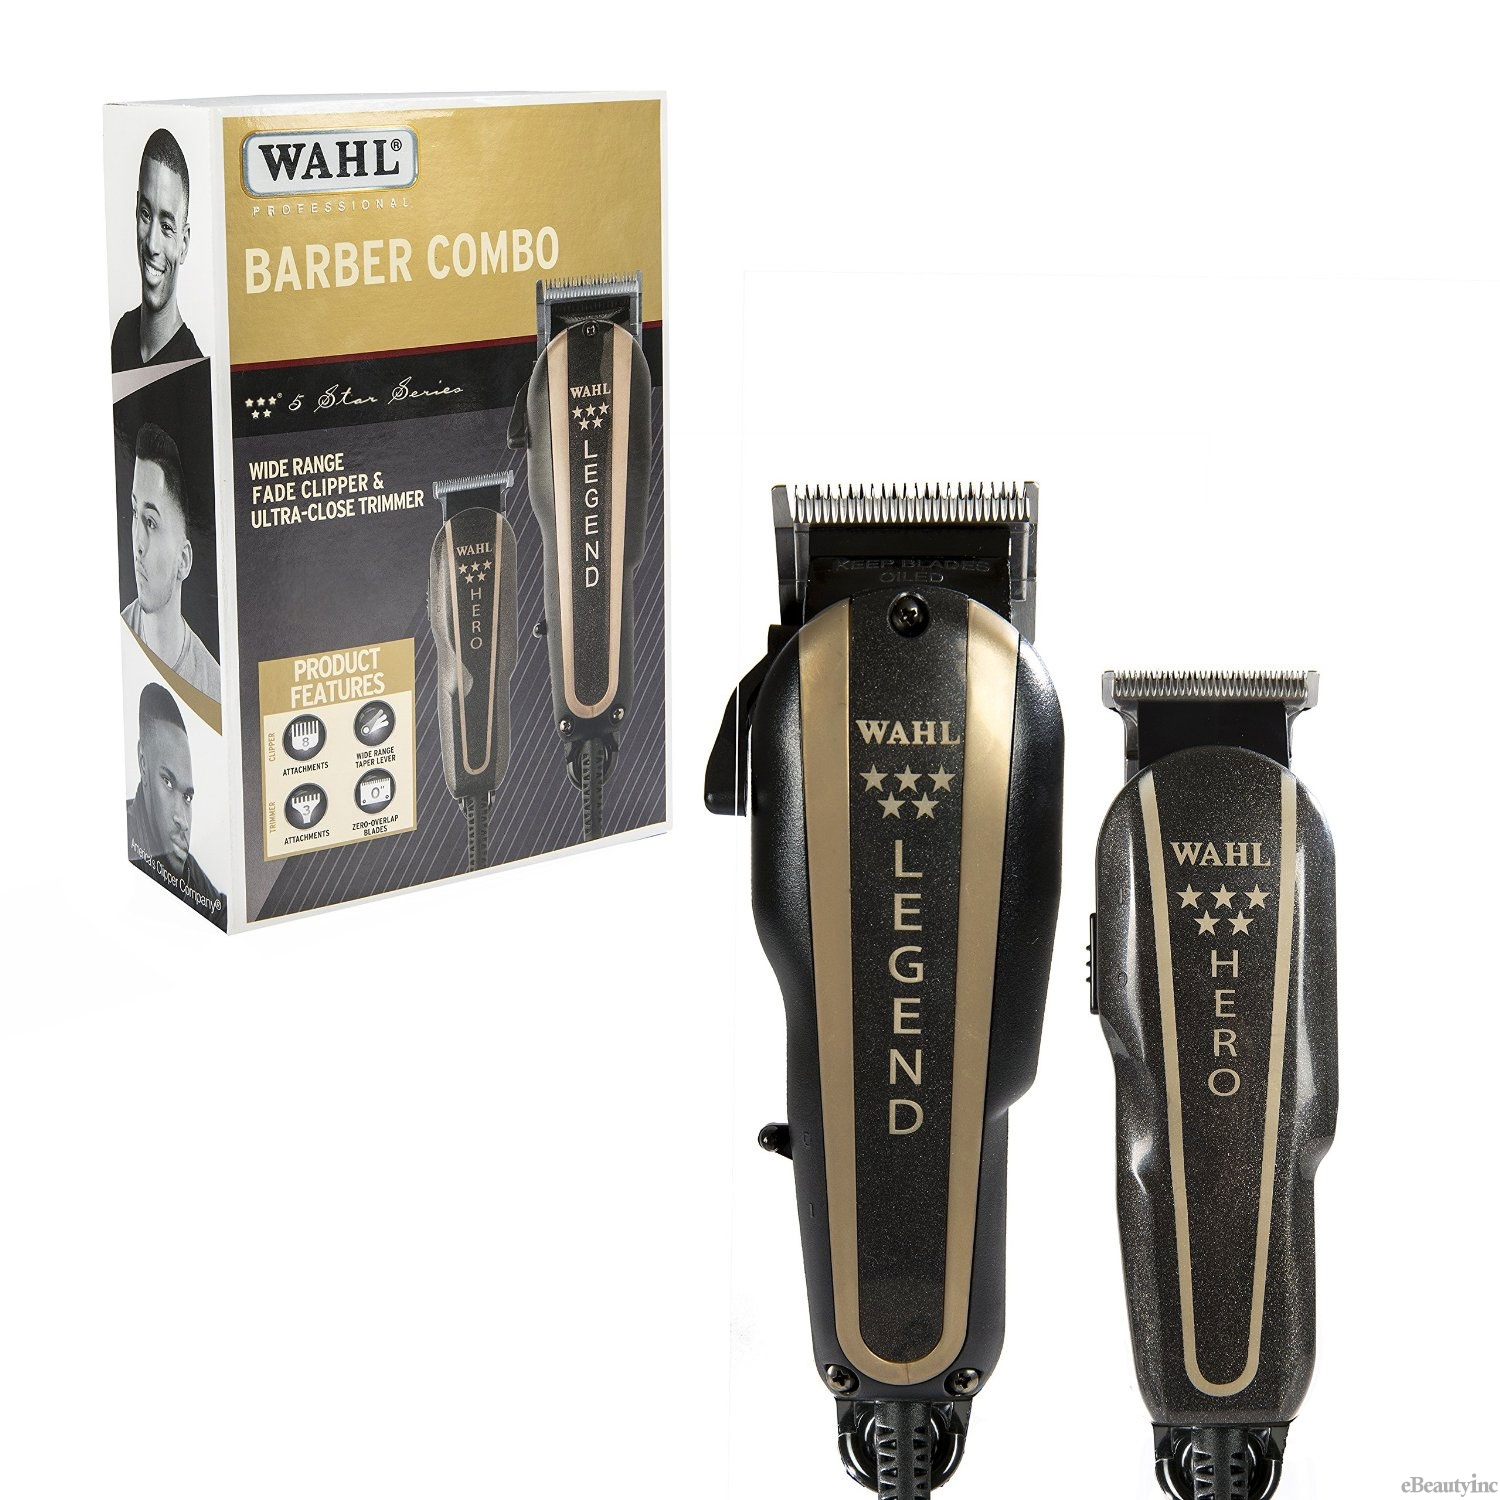 Image of Wahl 5-Star Barber Combo Legend Clipper and Hero Trimmer #8180